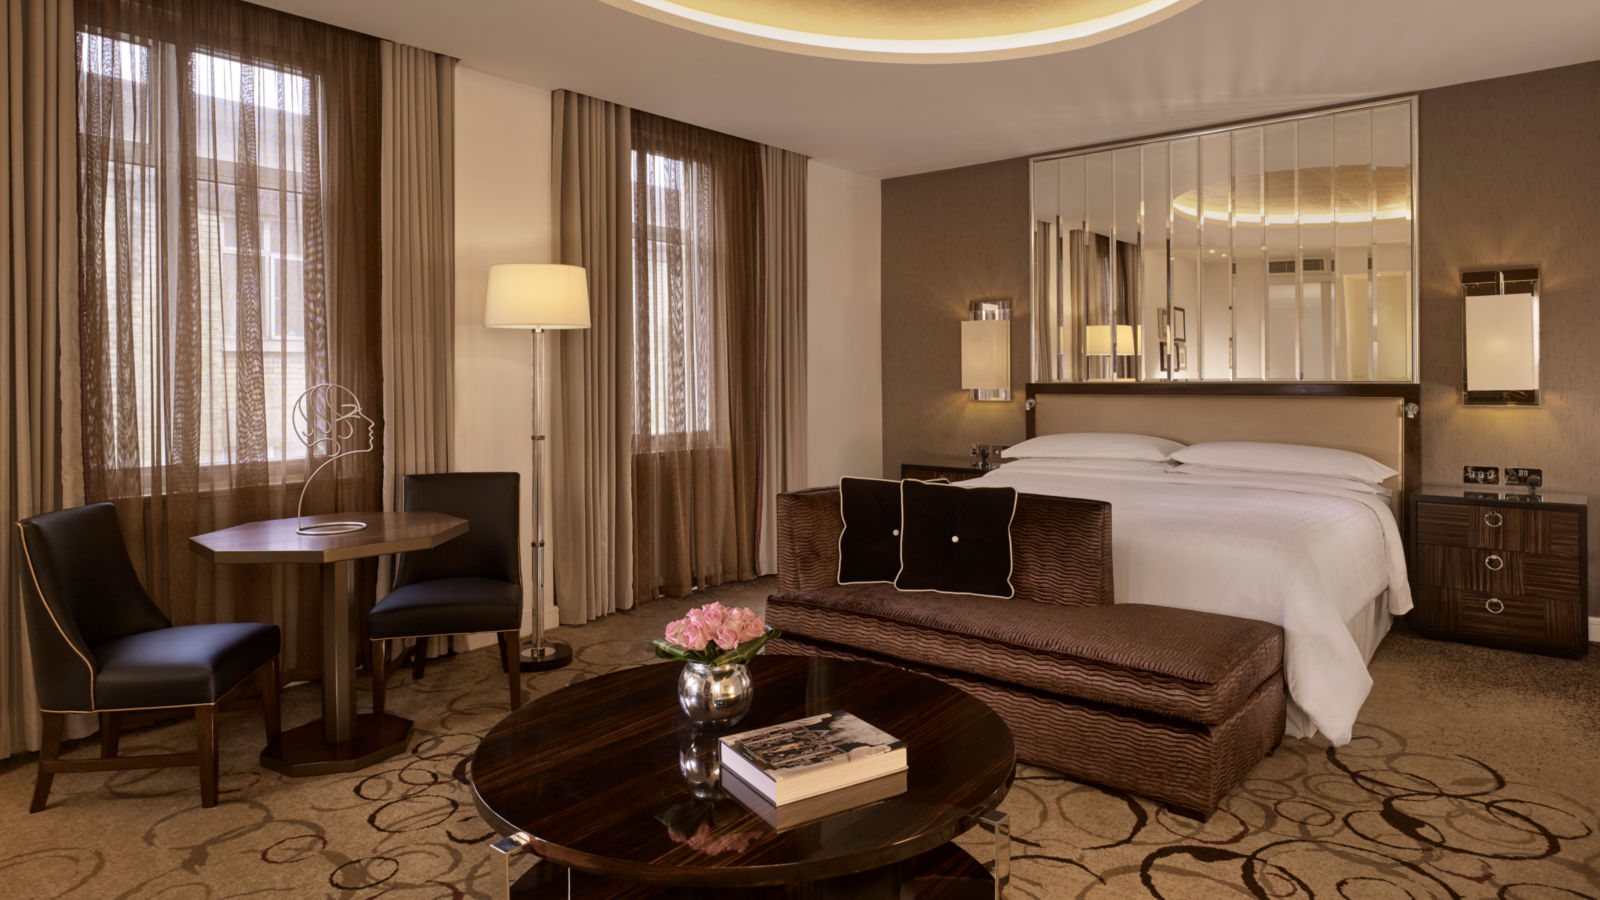 Classically beautiful, the Art Deco Suite at London's Sheraton Grand hotel